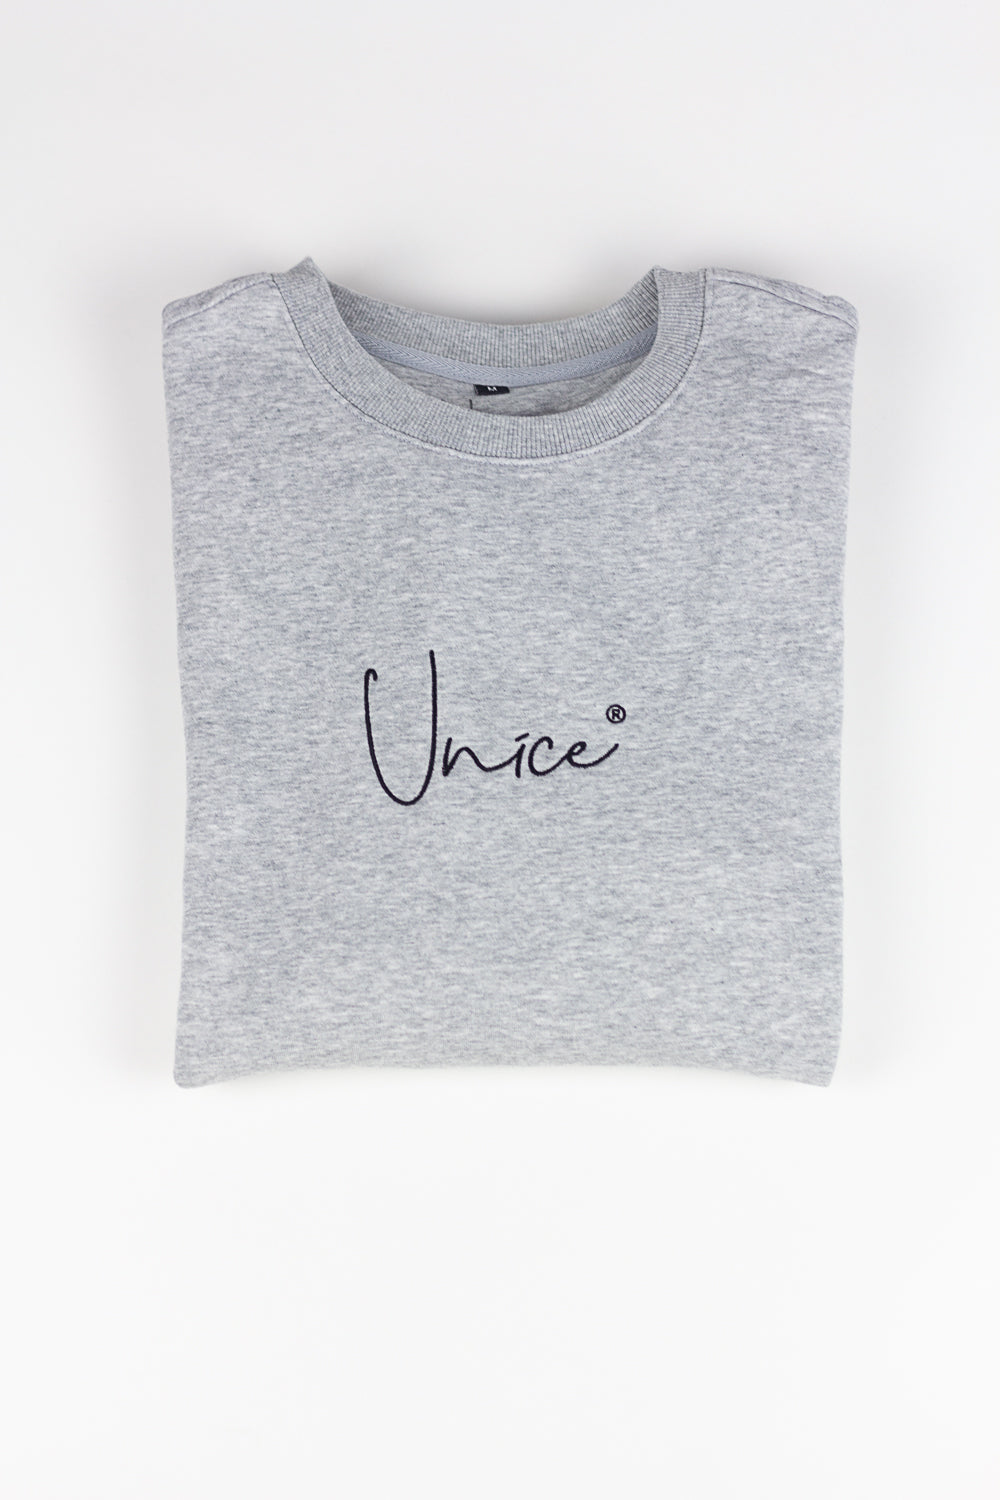 2. Unice Sweater GREY